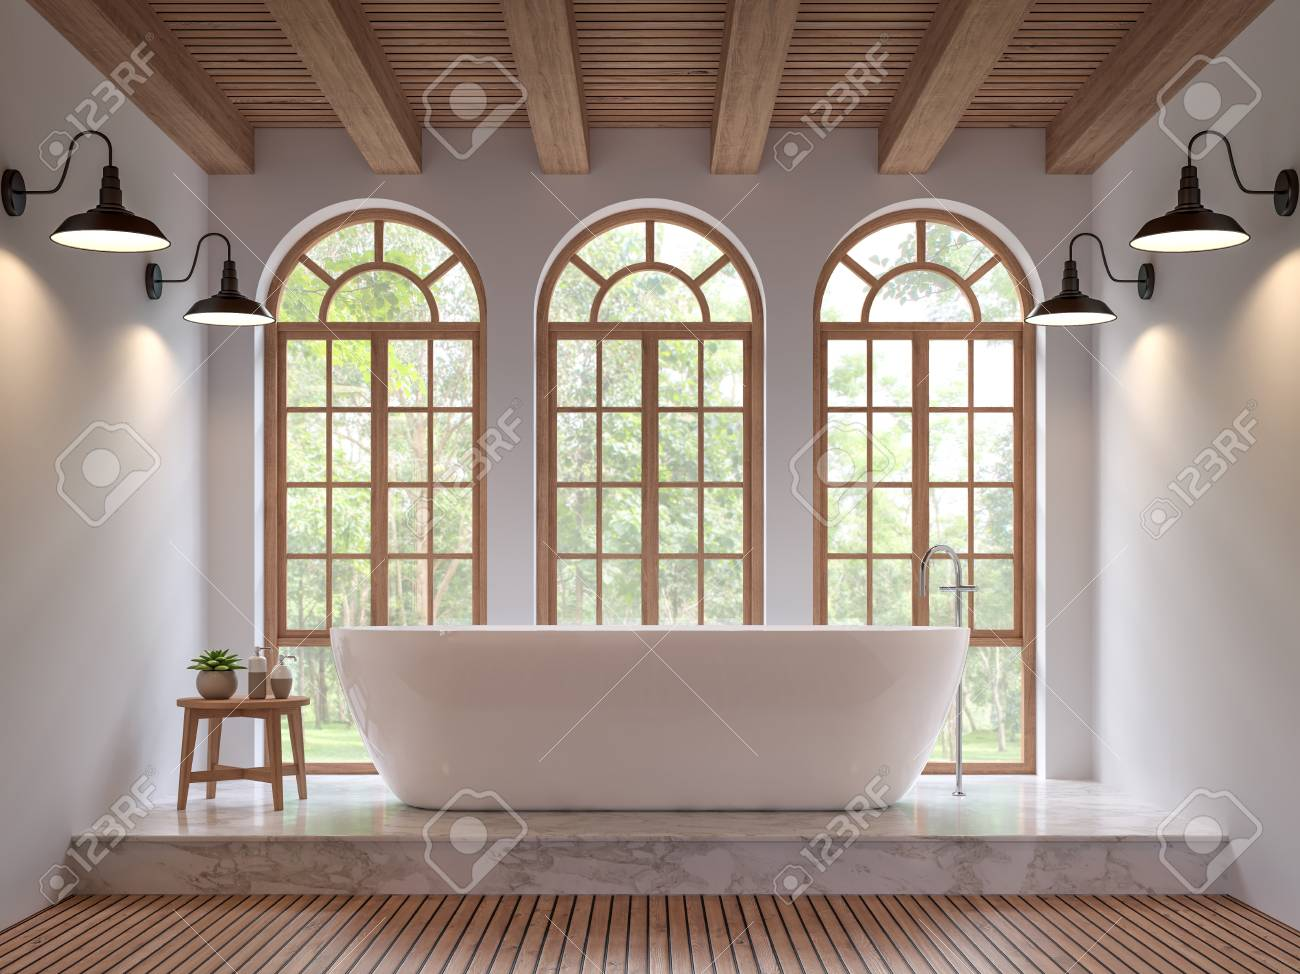 Scandinavian bathroom 3d rendering image.The Rooms have wooden and white marble floors,wooden ceilings and white walls .There are arch shape window overlooking to the nature. - 91682425